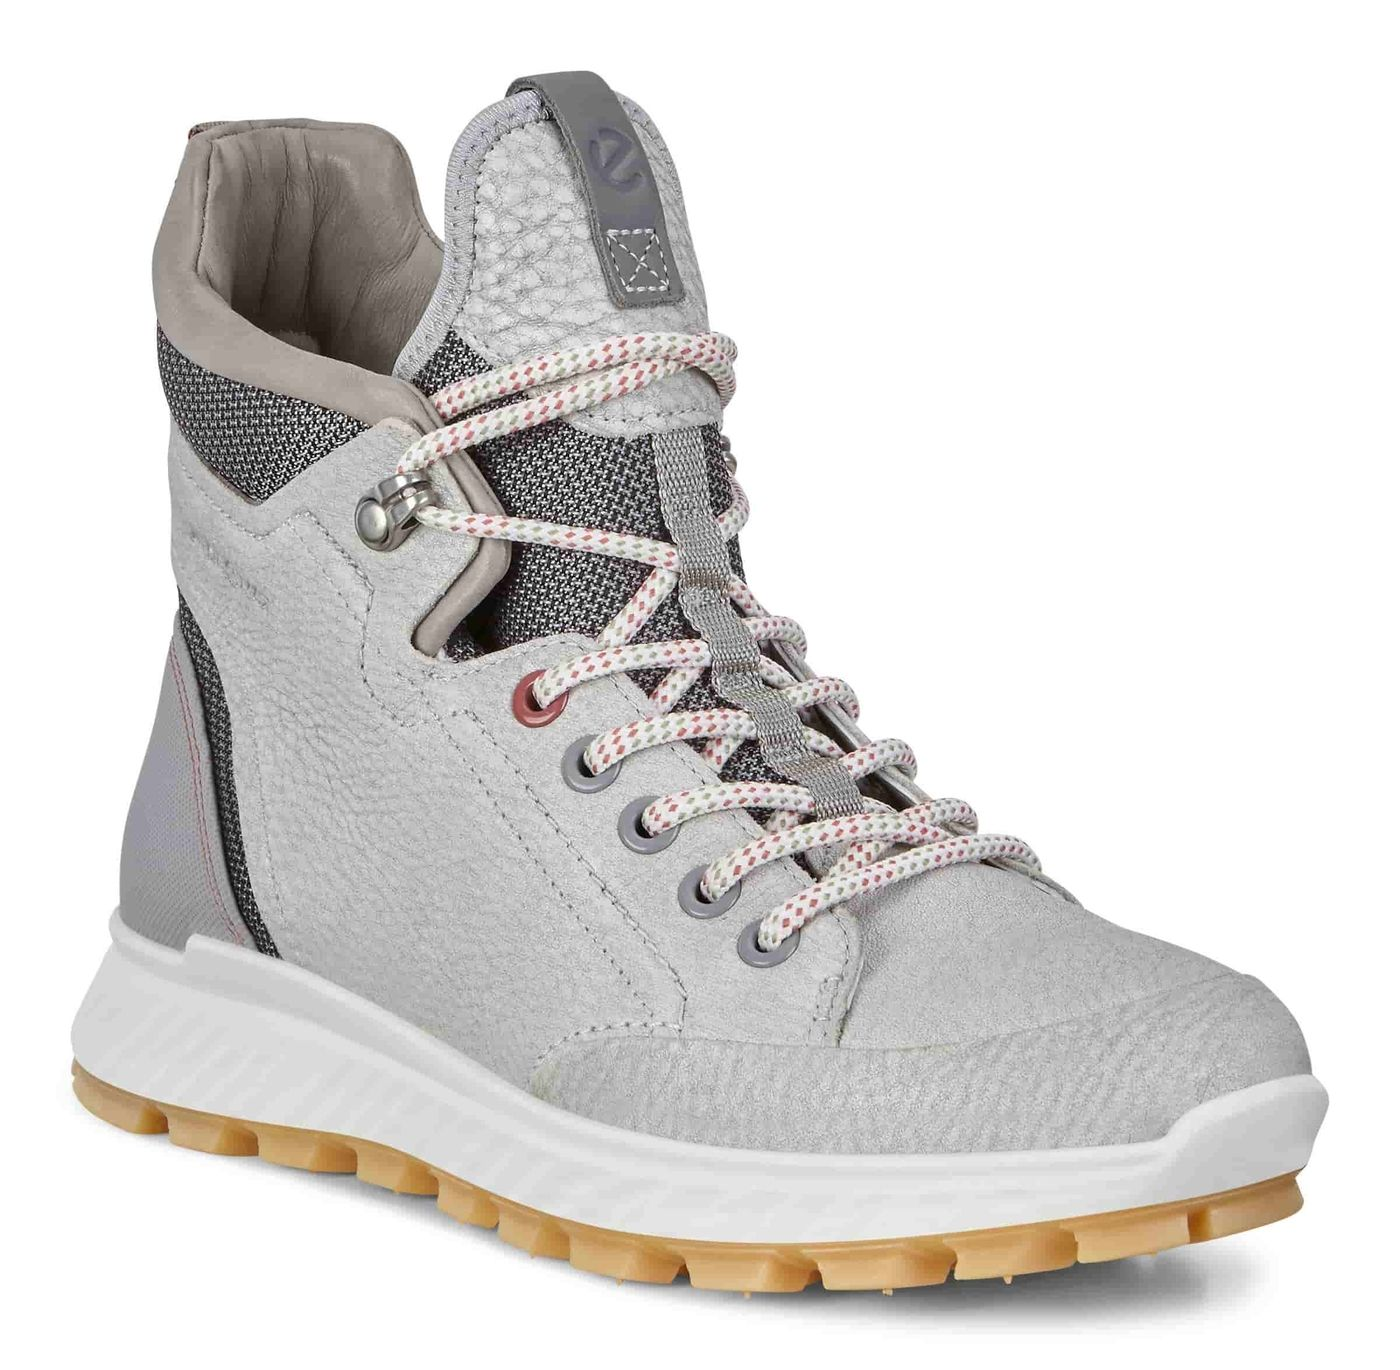 ECCO Exostrike Ankle Boots | Women's Hiking Boots | ECCO